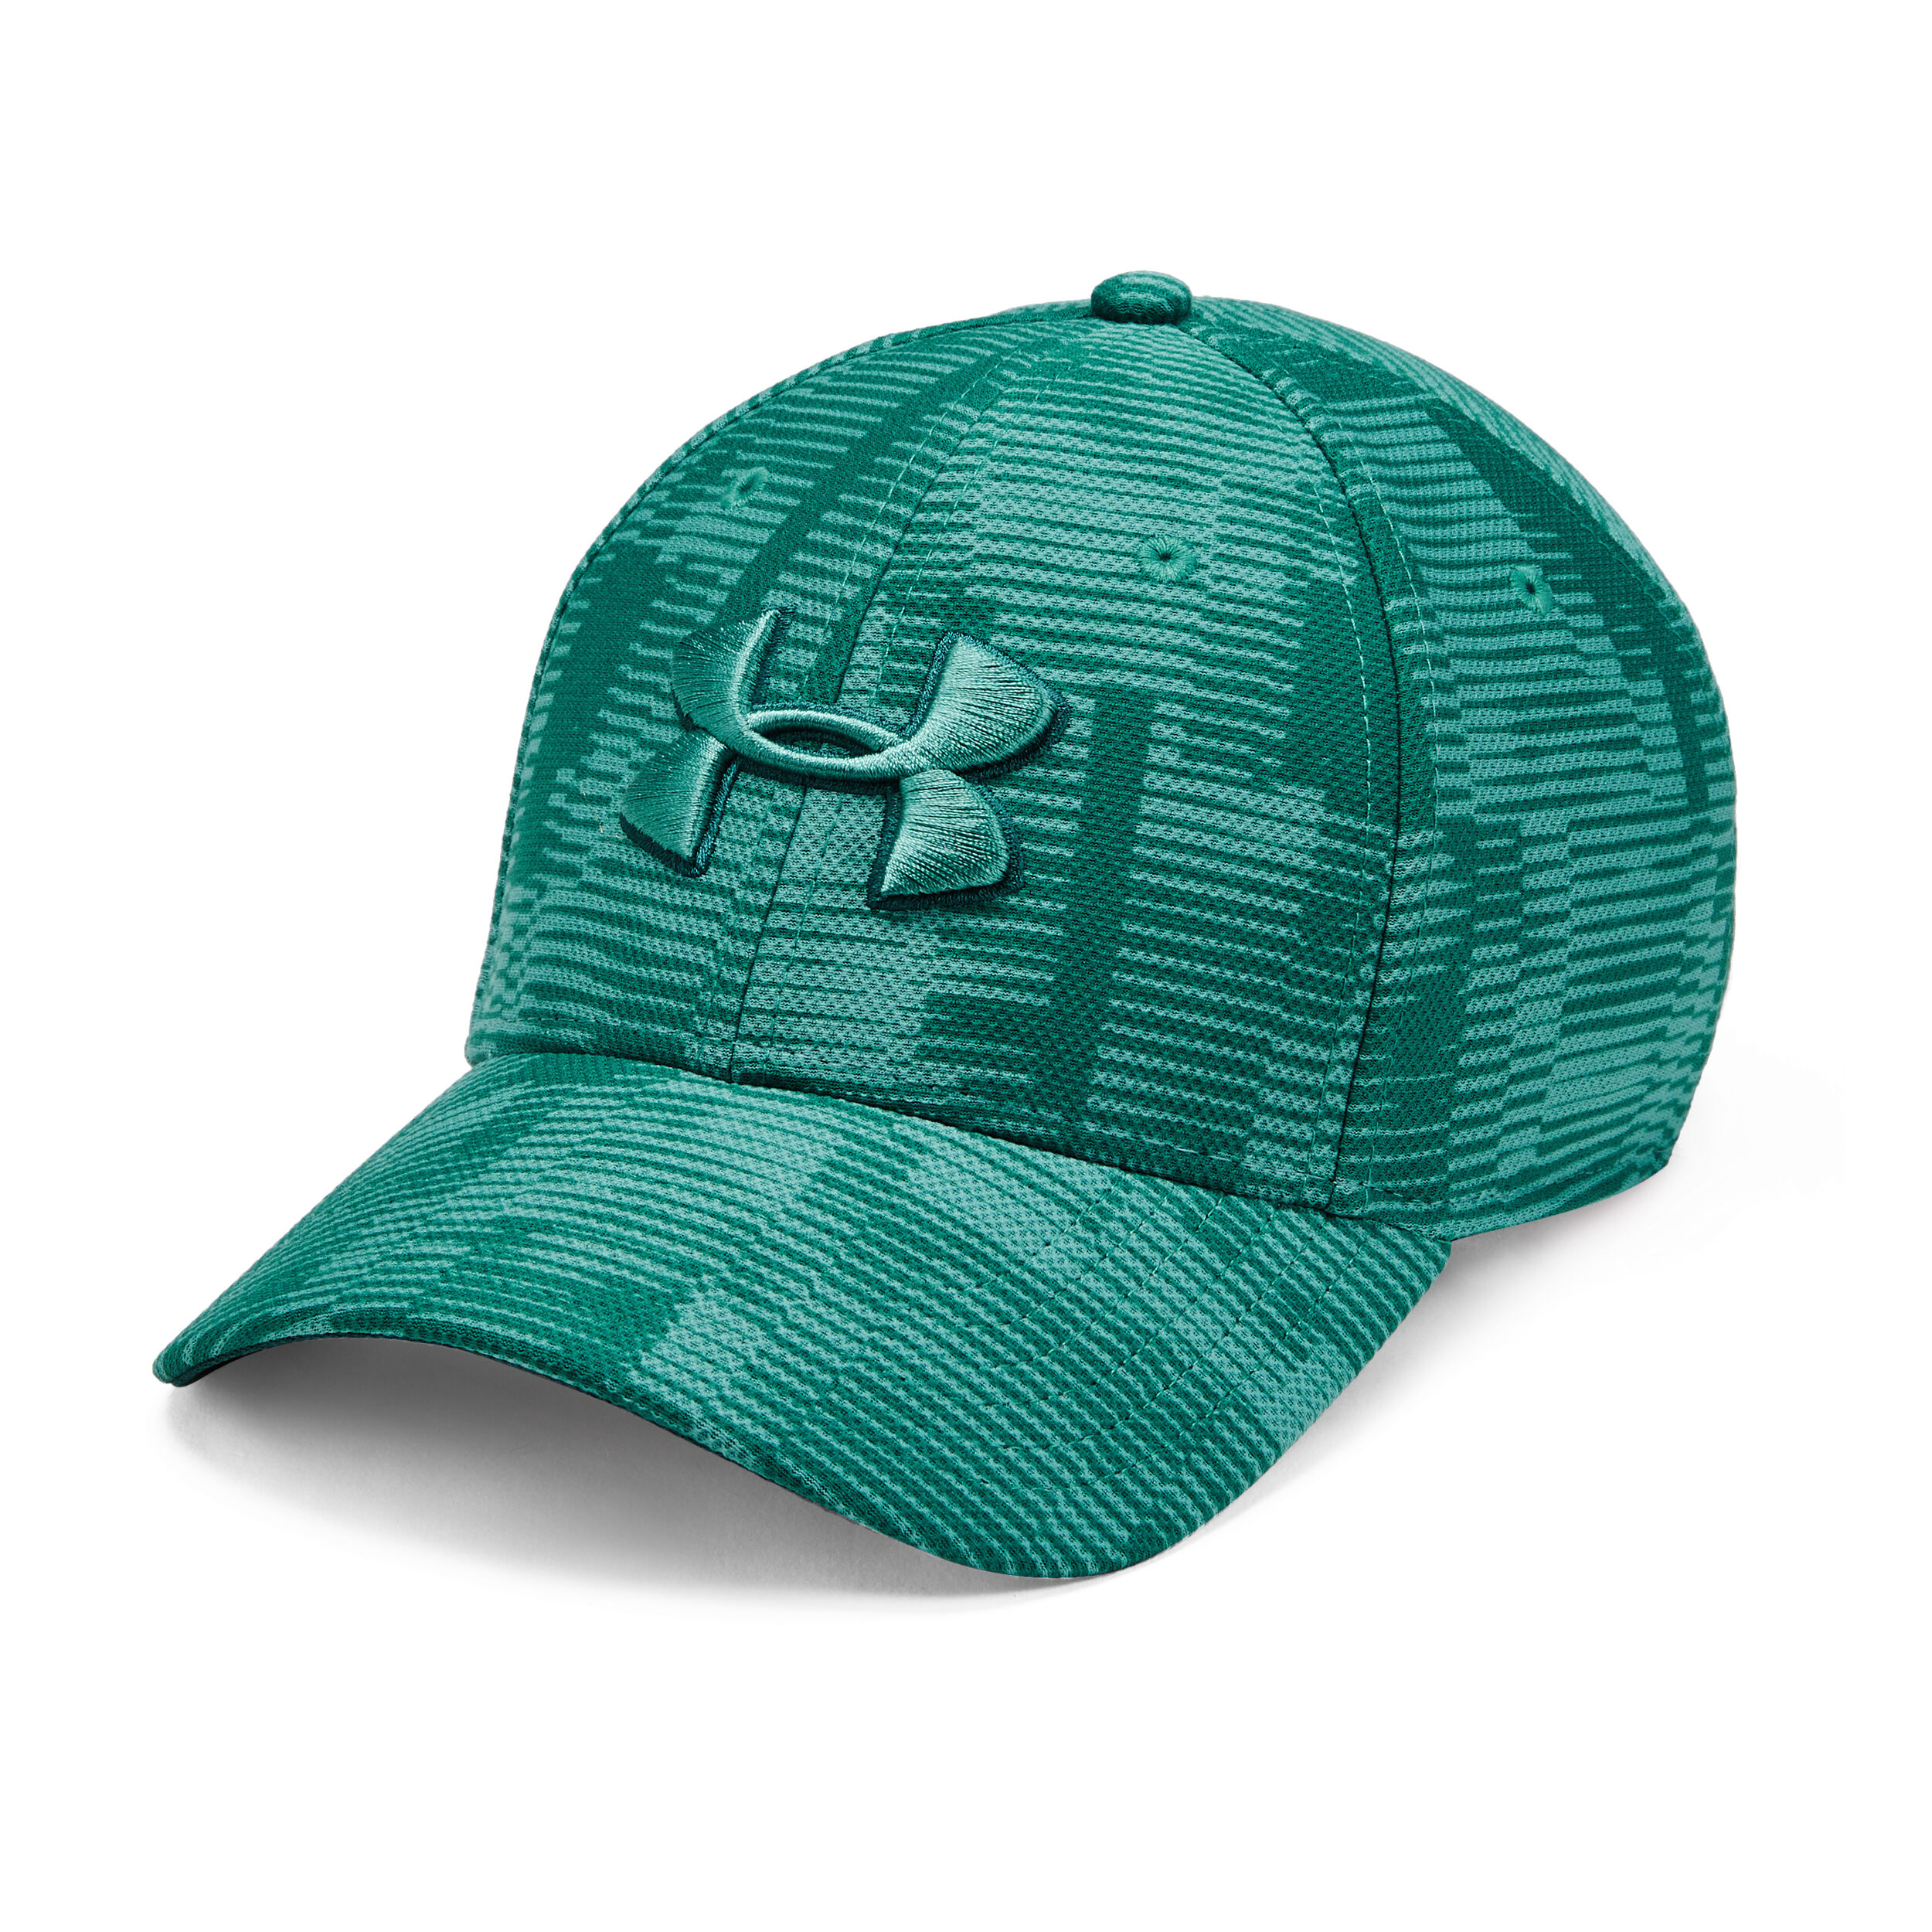 Under Armour Printed Blitzing 3.0 Casquette Bleu Petrol, Mint